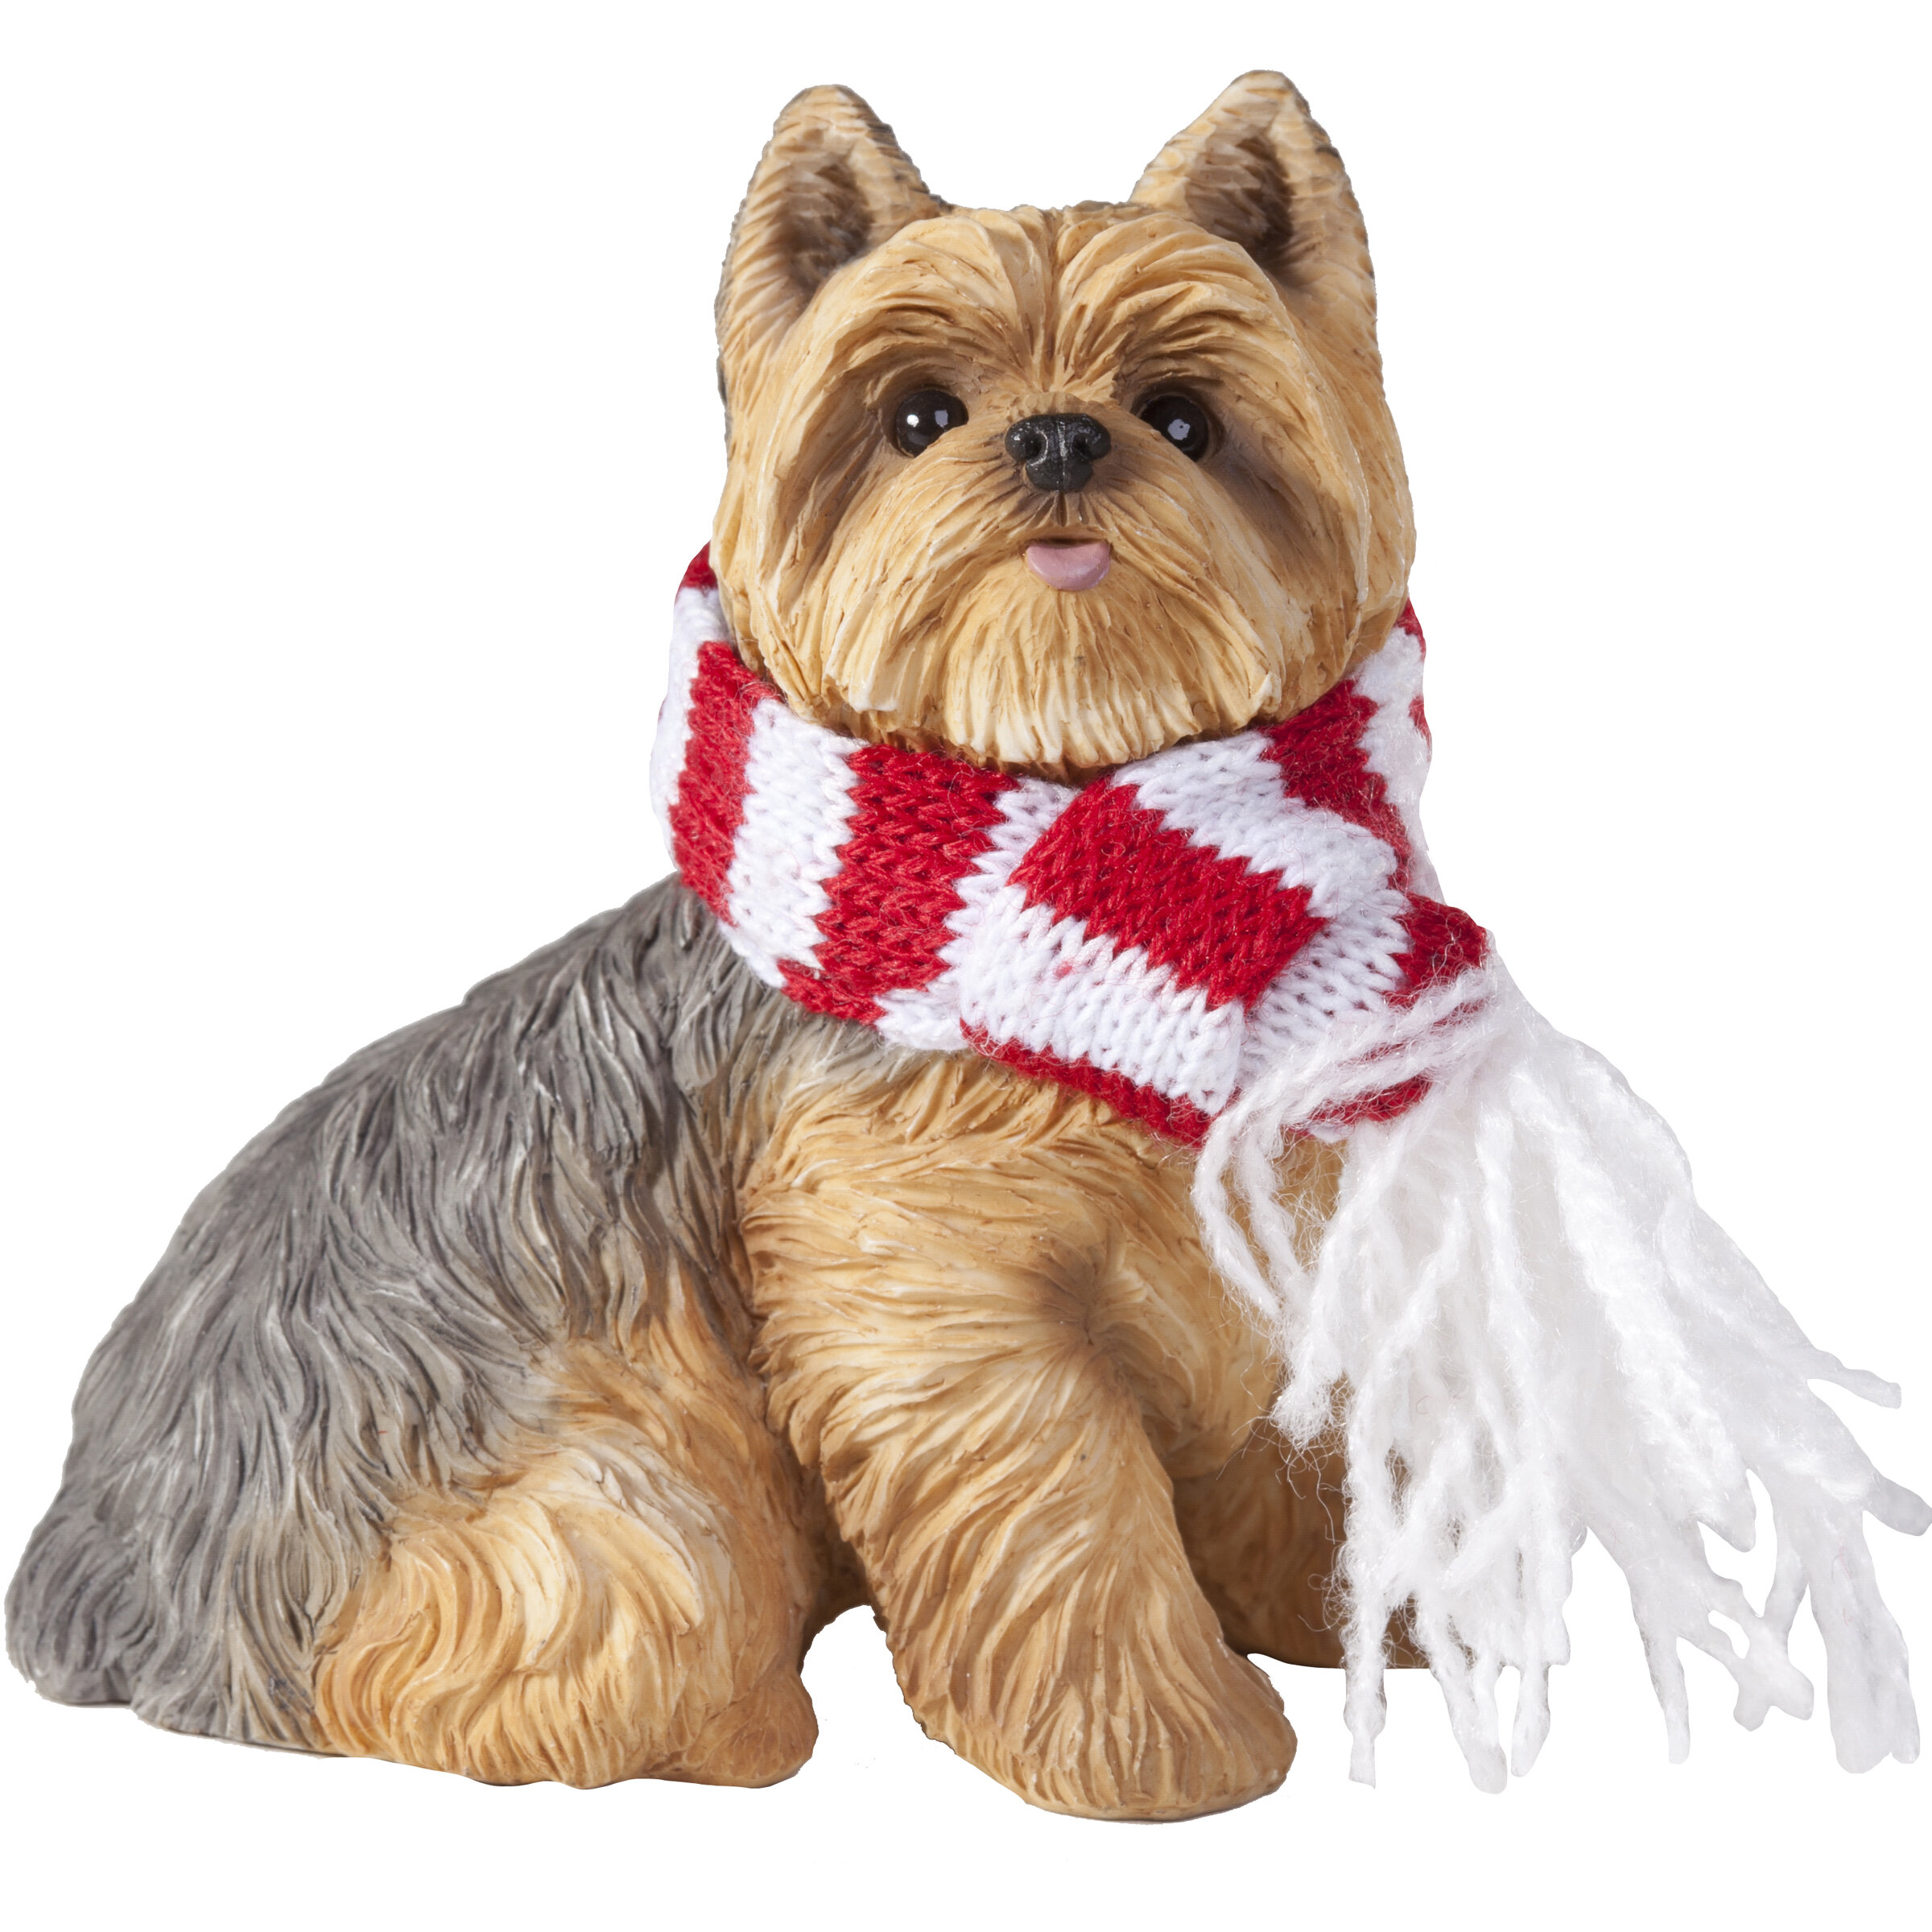 Sandicast Yorkshire Terrier Christmas Tree Ornament Reviews Wayfair